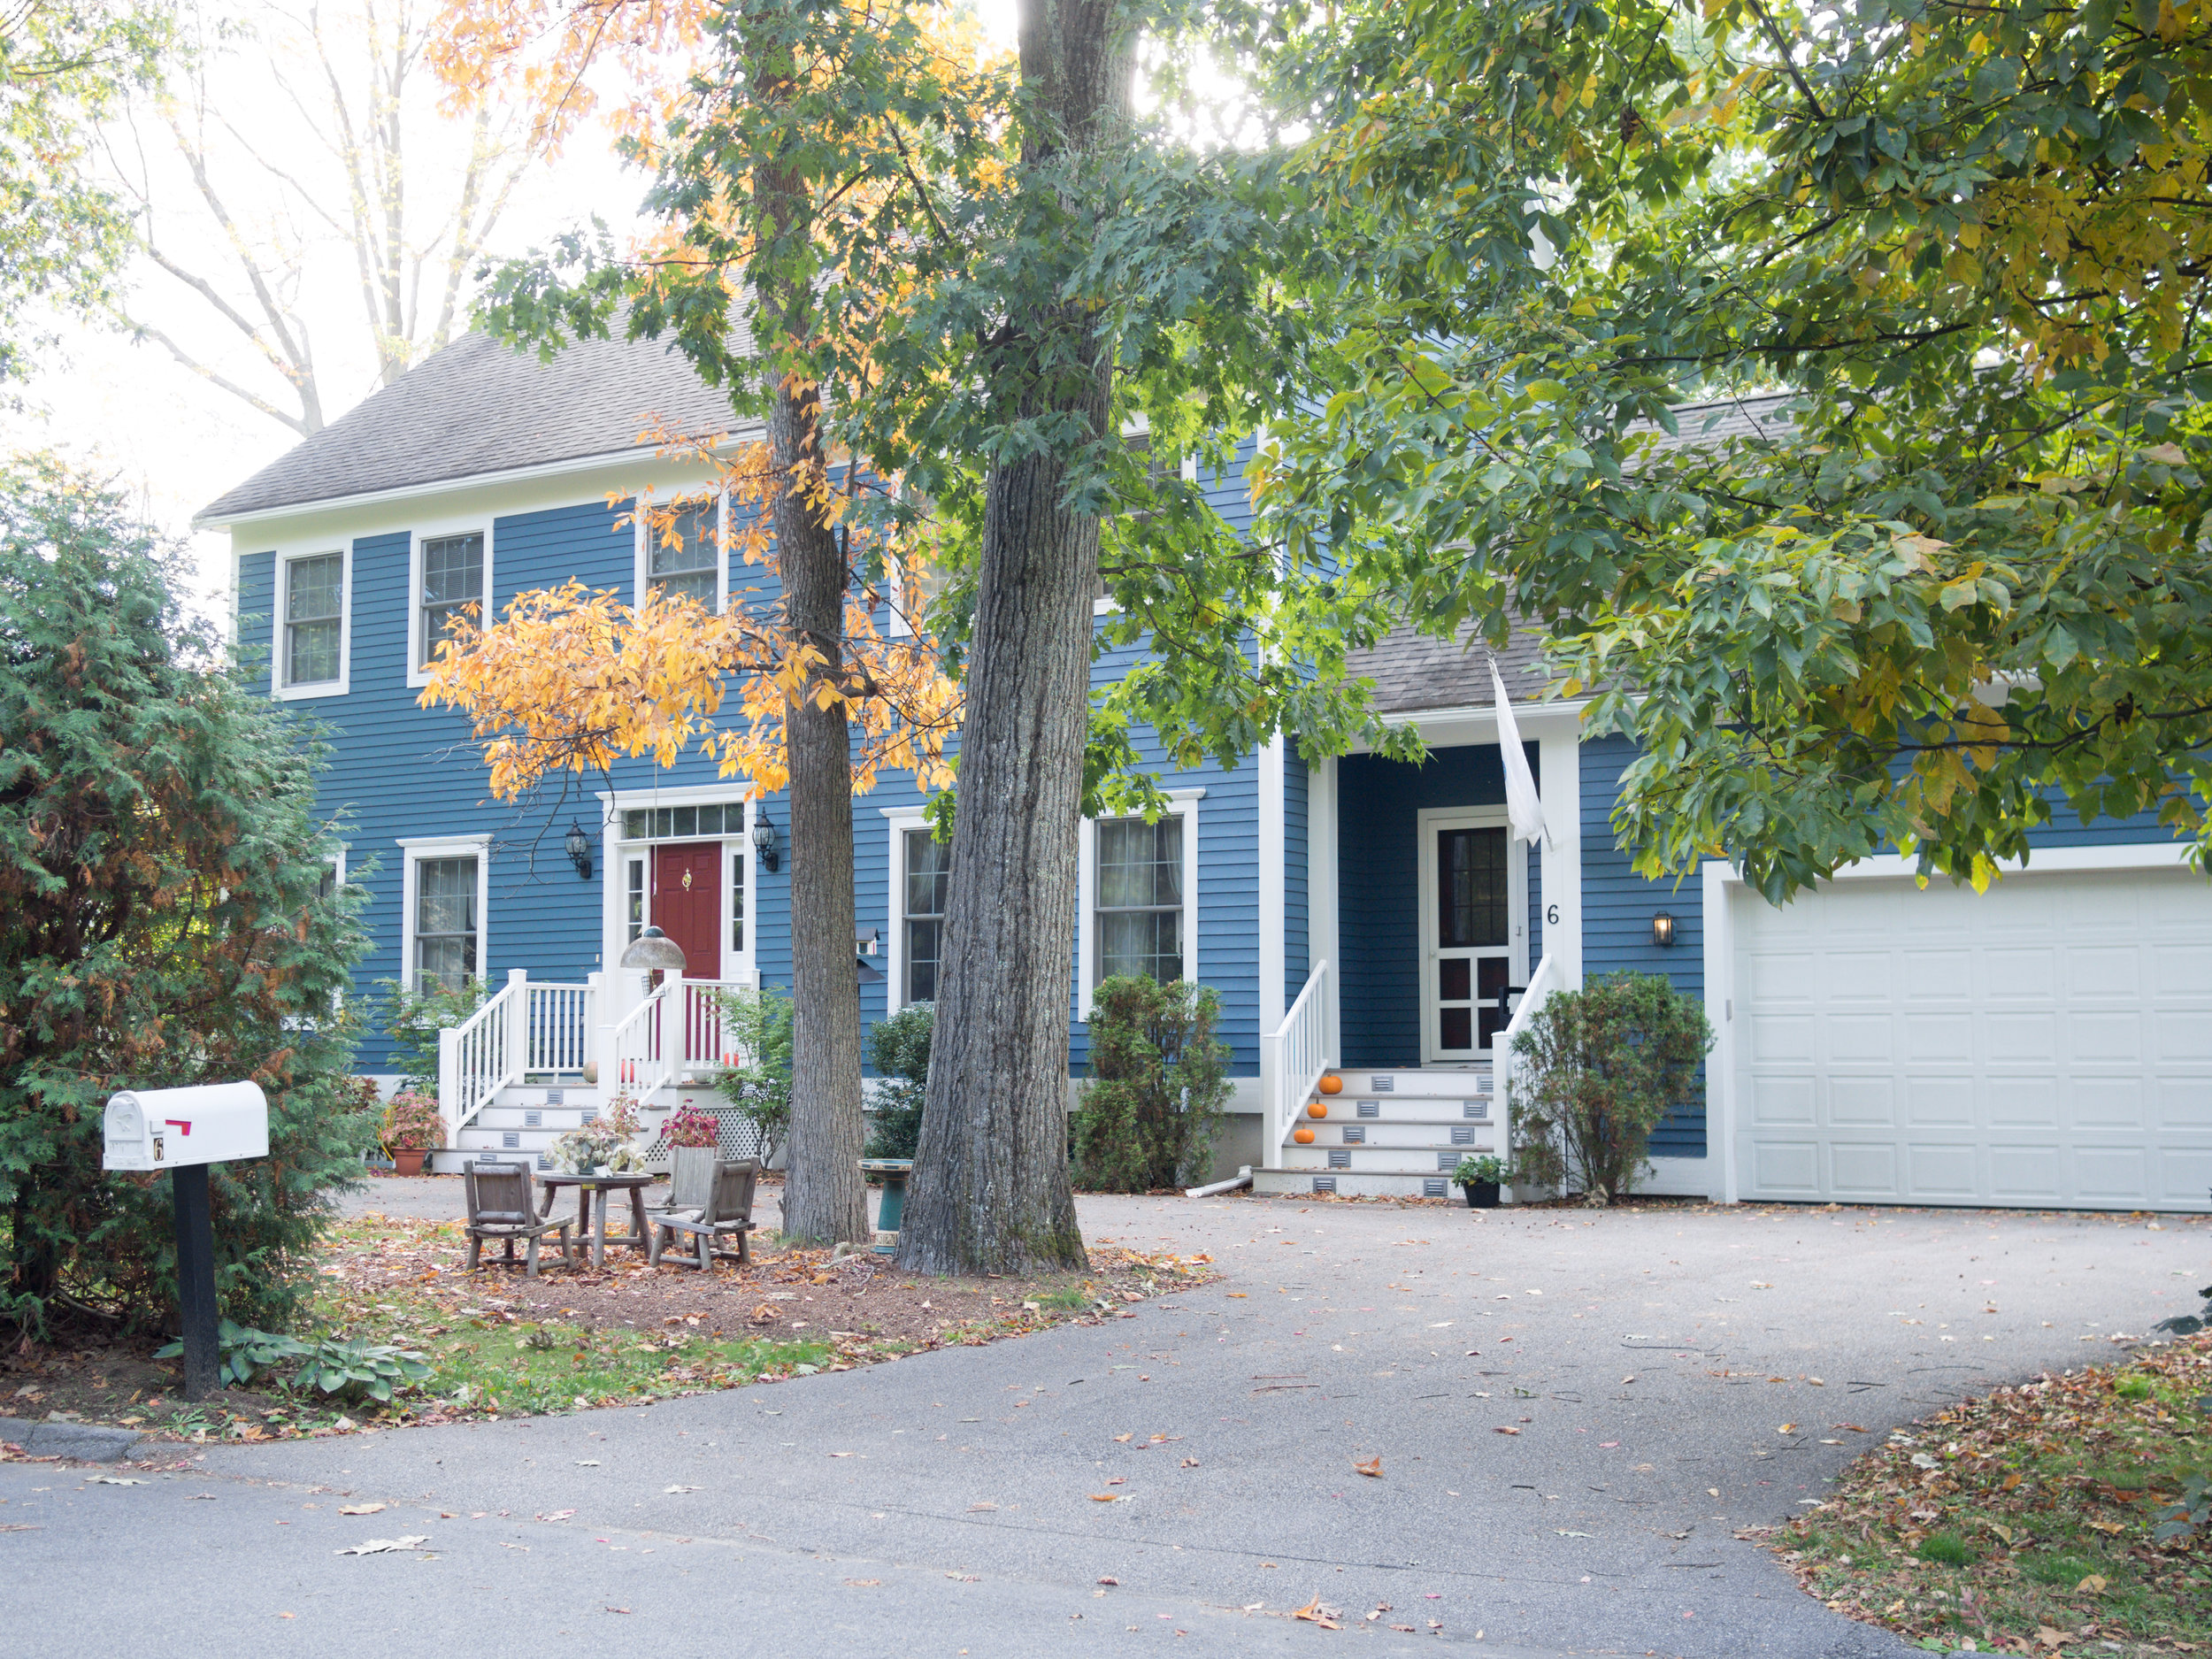 Residential Example